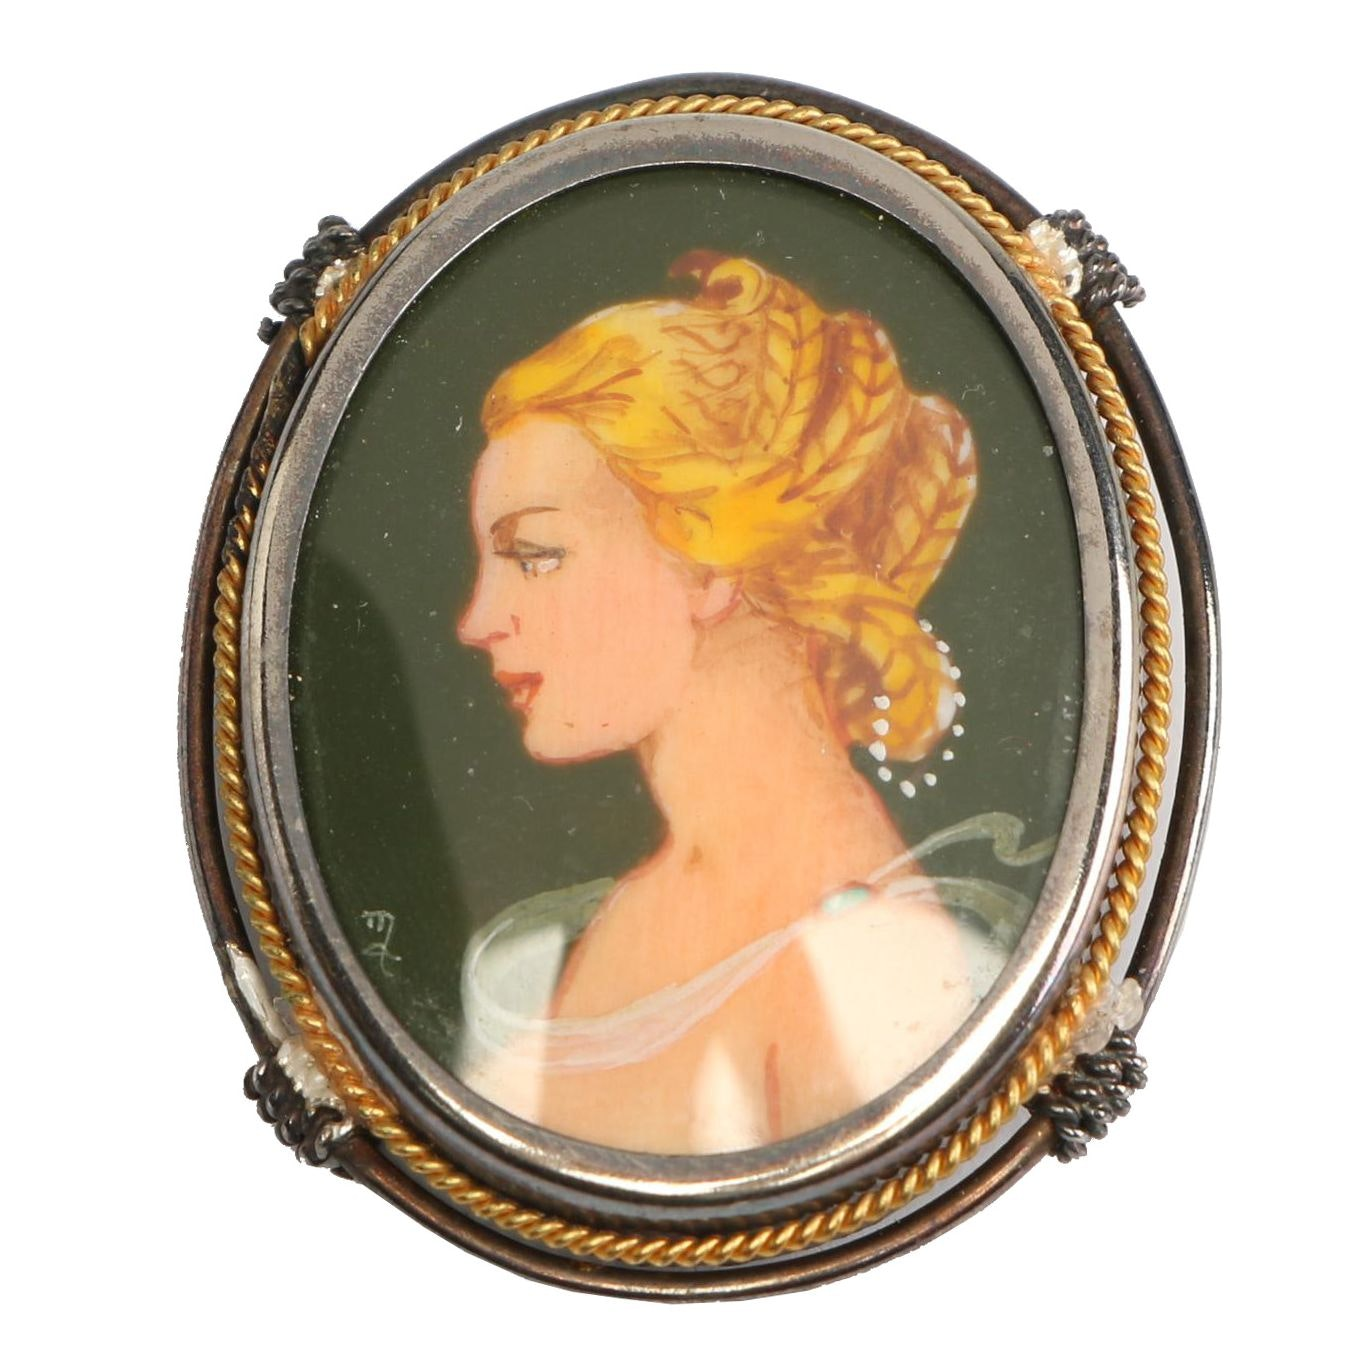 Vintage Painted Cameo Converter Brooch or Pendant